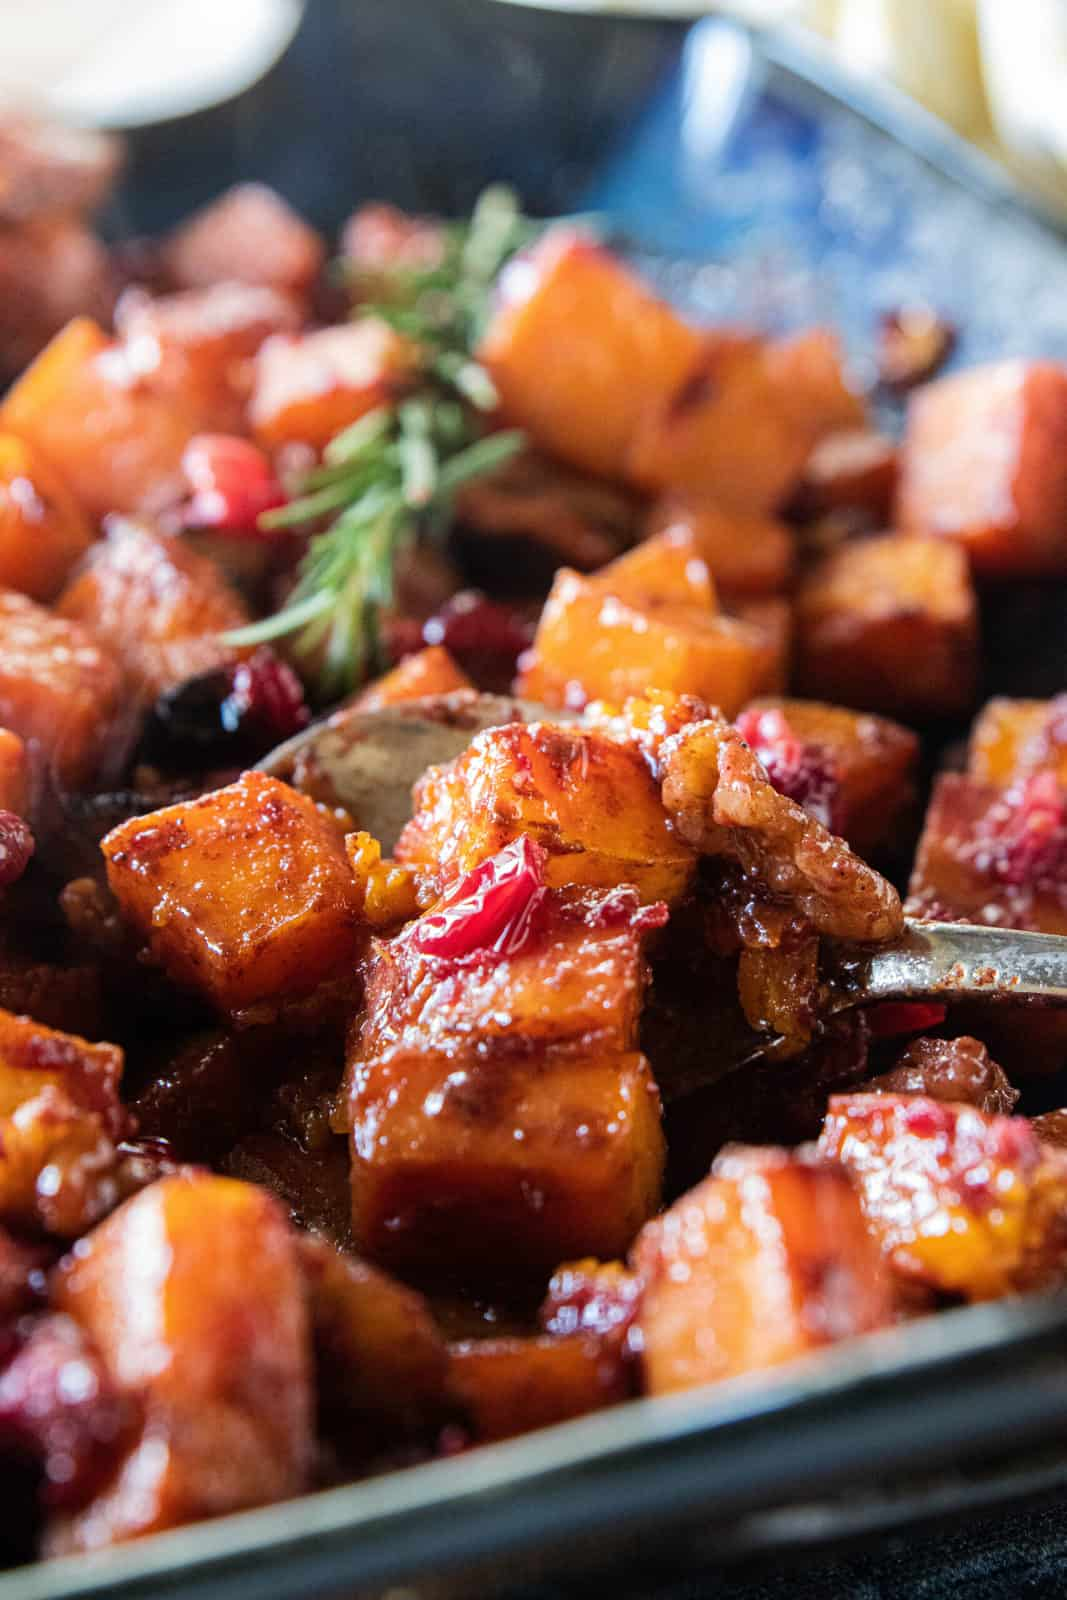 A spoon being shown scooping up a serving of roasted butternut squash with walnuts and cranberries in a baking dish.